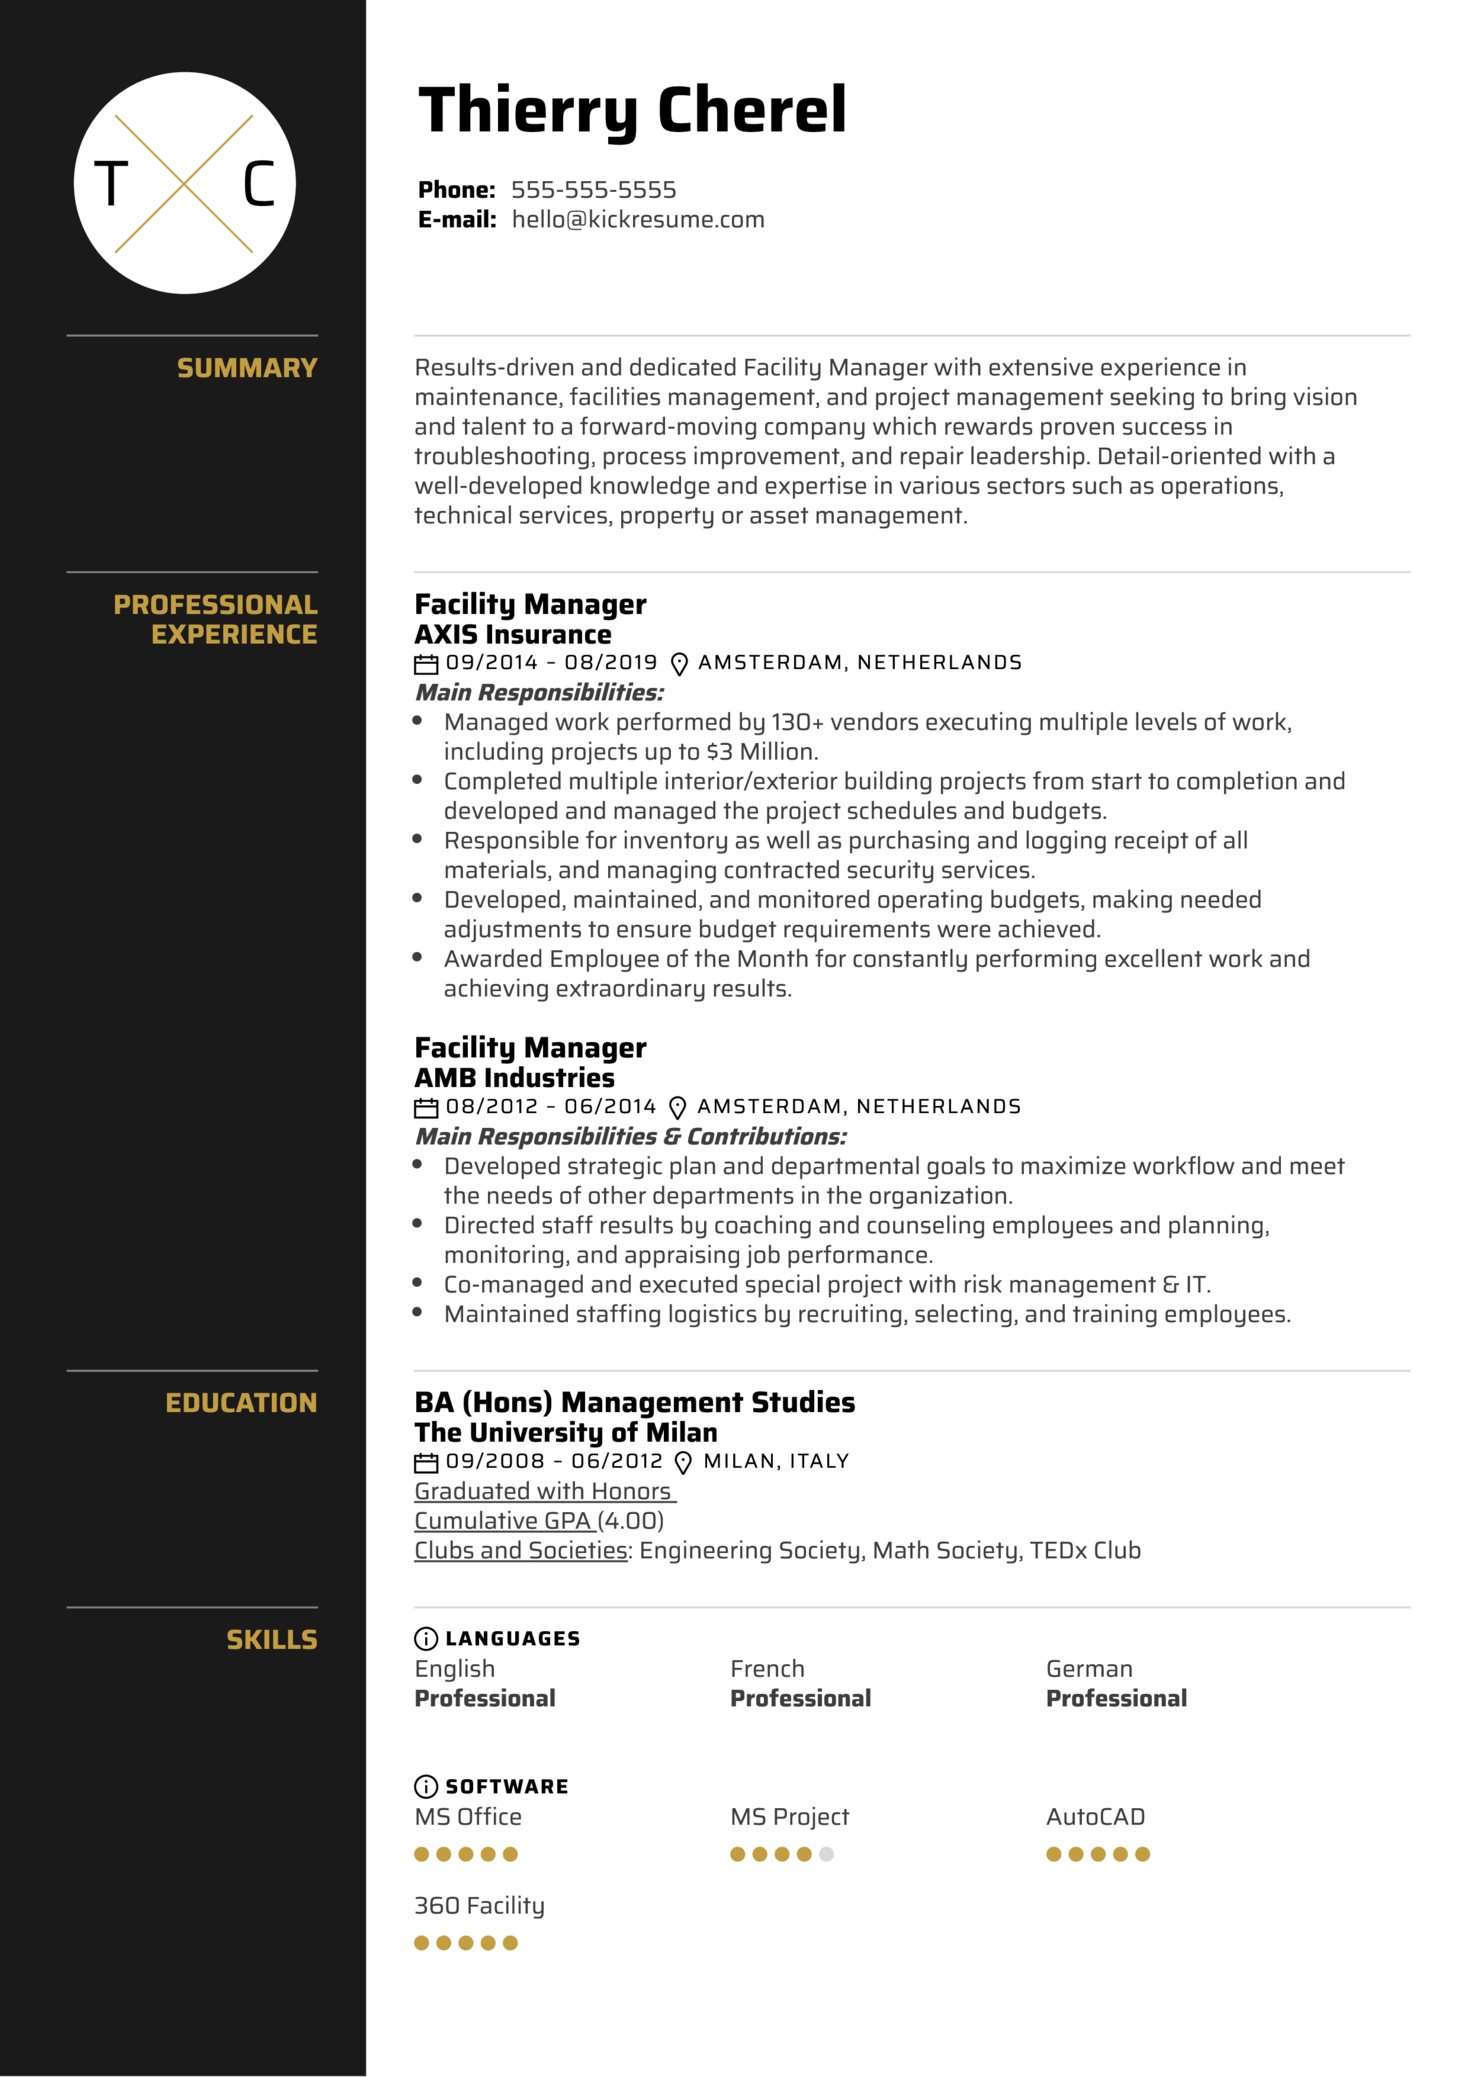 Facility Manager Resume Resume Sample (Parte 1)